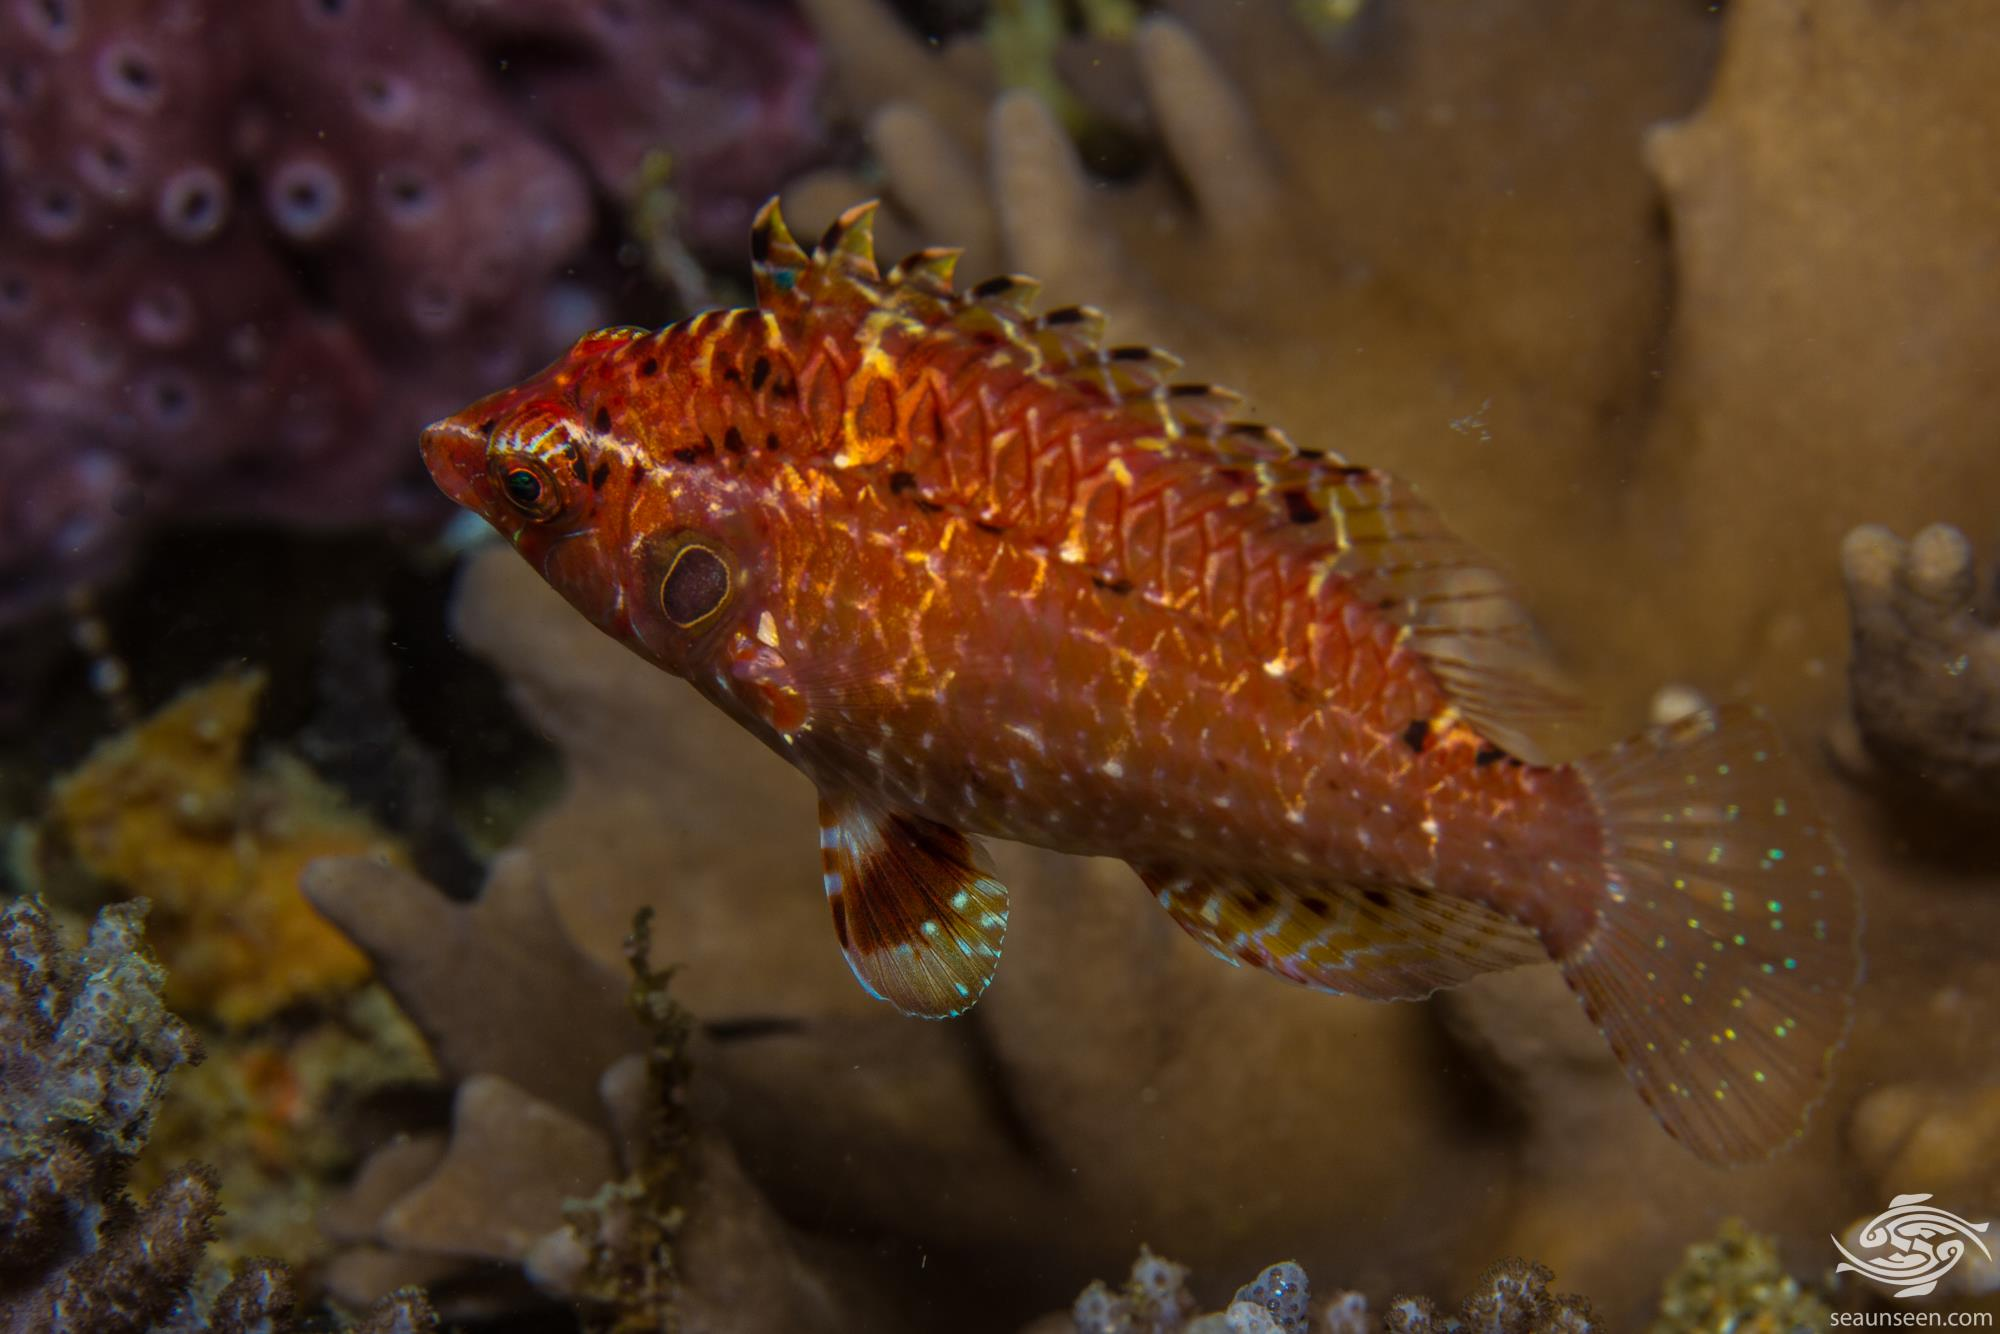 Cryptic wrasse Pteragogus cryptus also known as the Indian Sneaky Wrasse